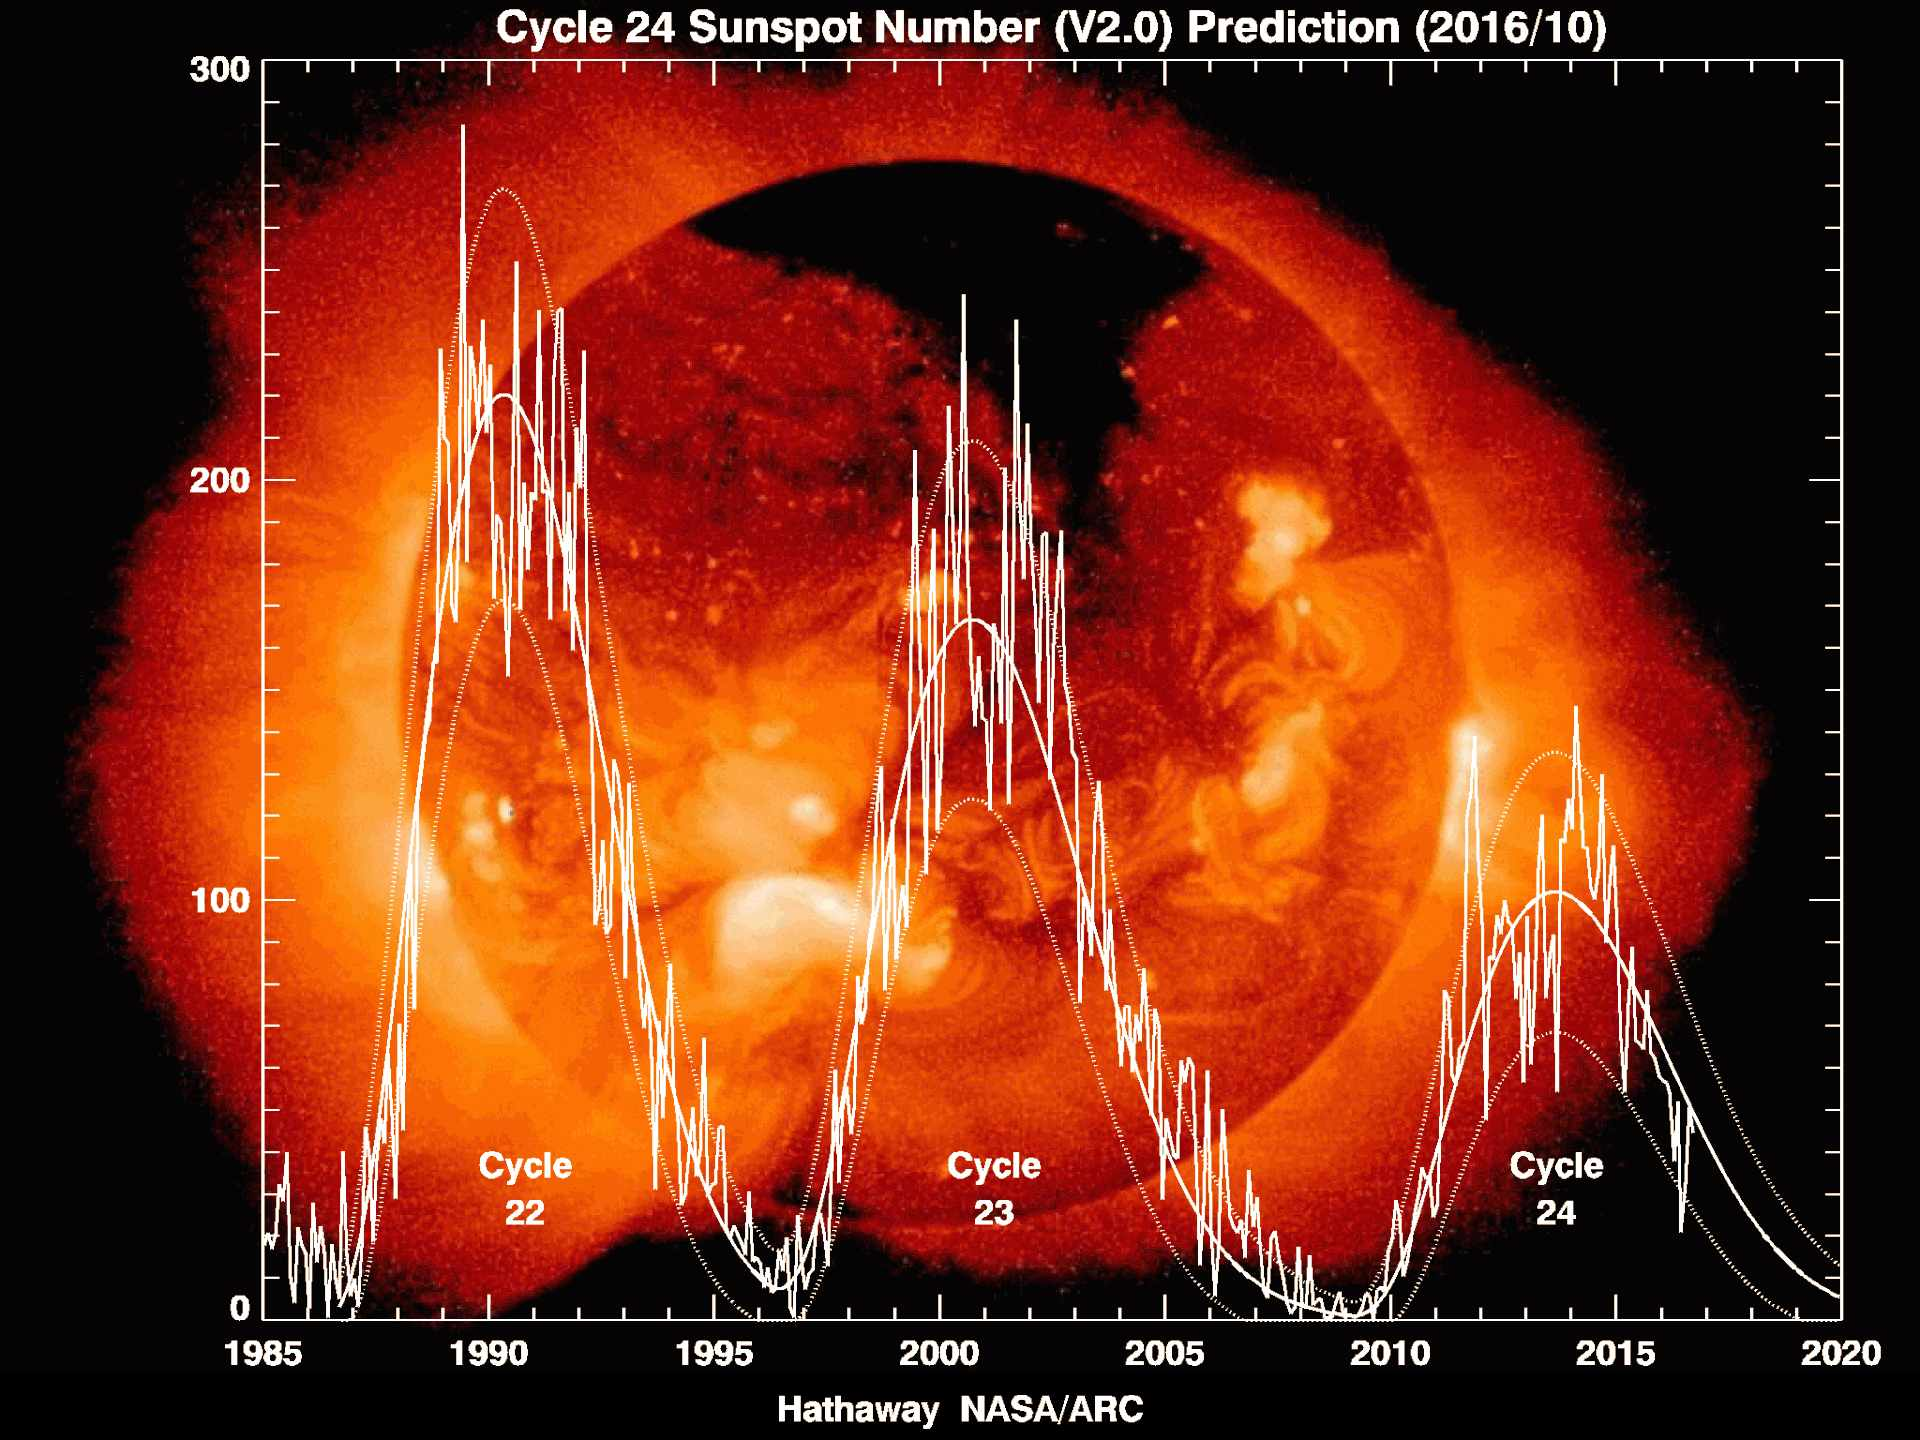 Podcast: Will solar activity threaten future space missions?